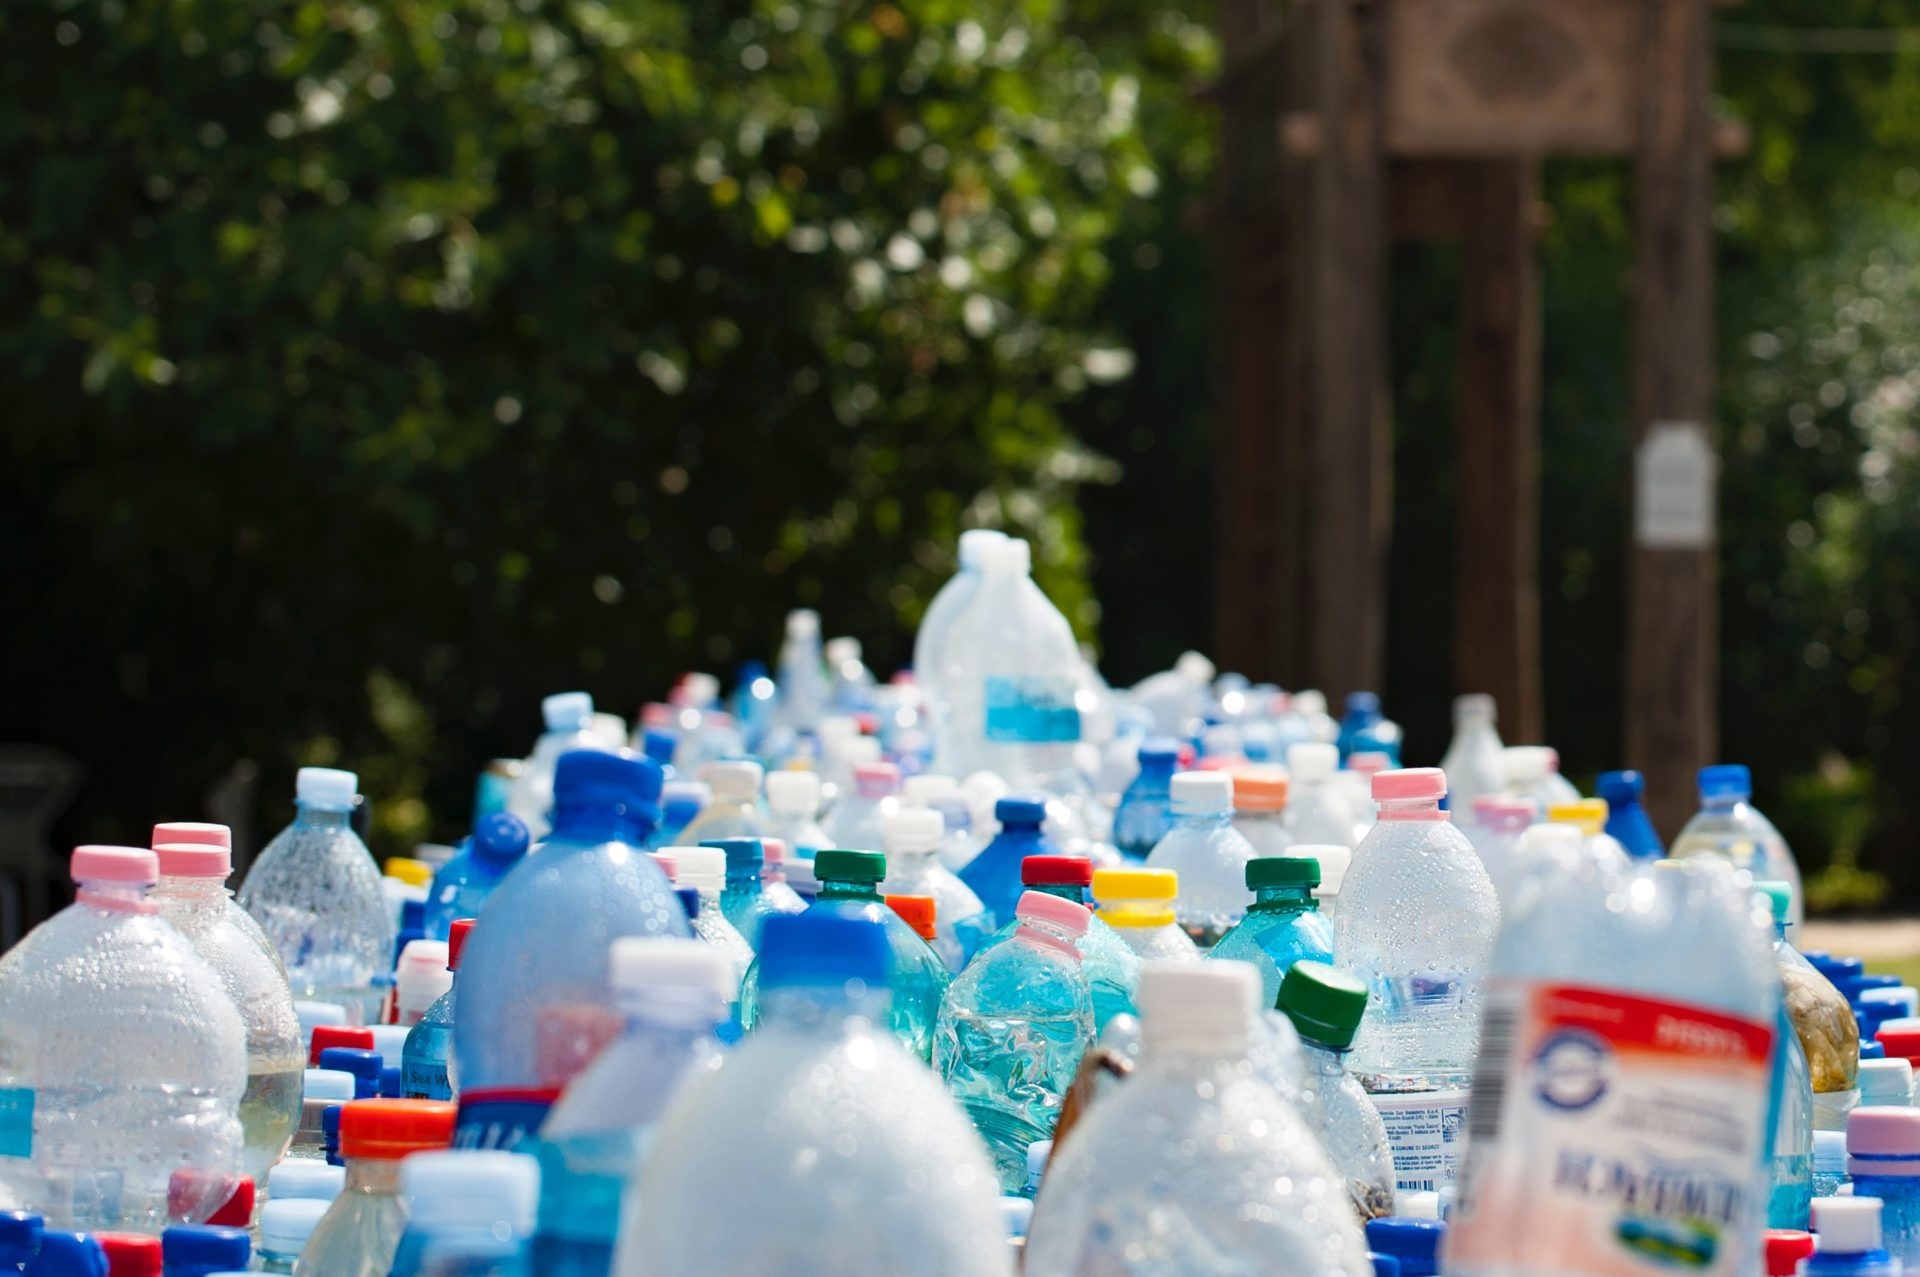 What the Plastics industry tells us about CSR